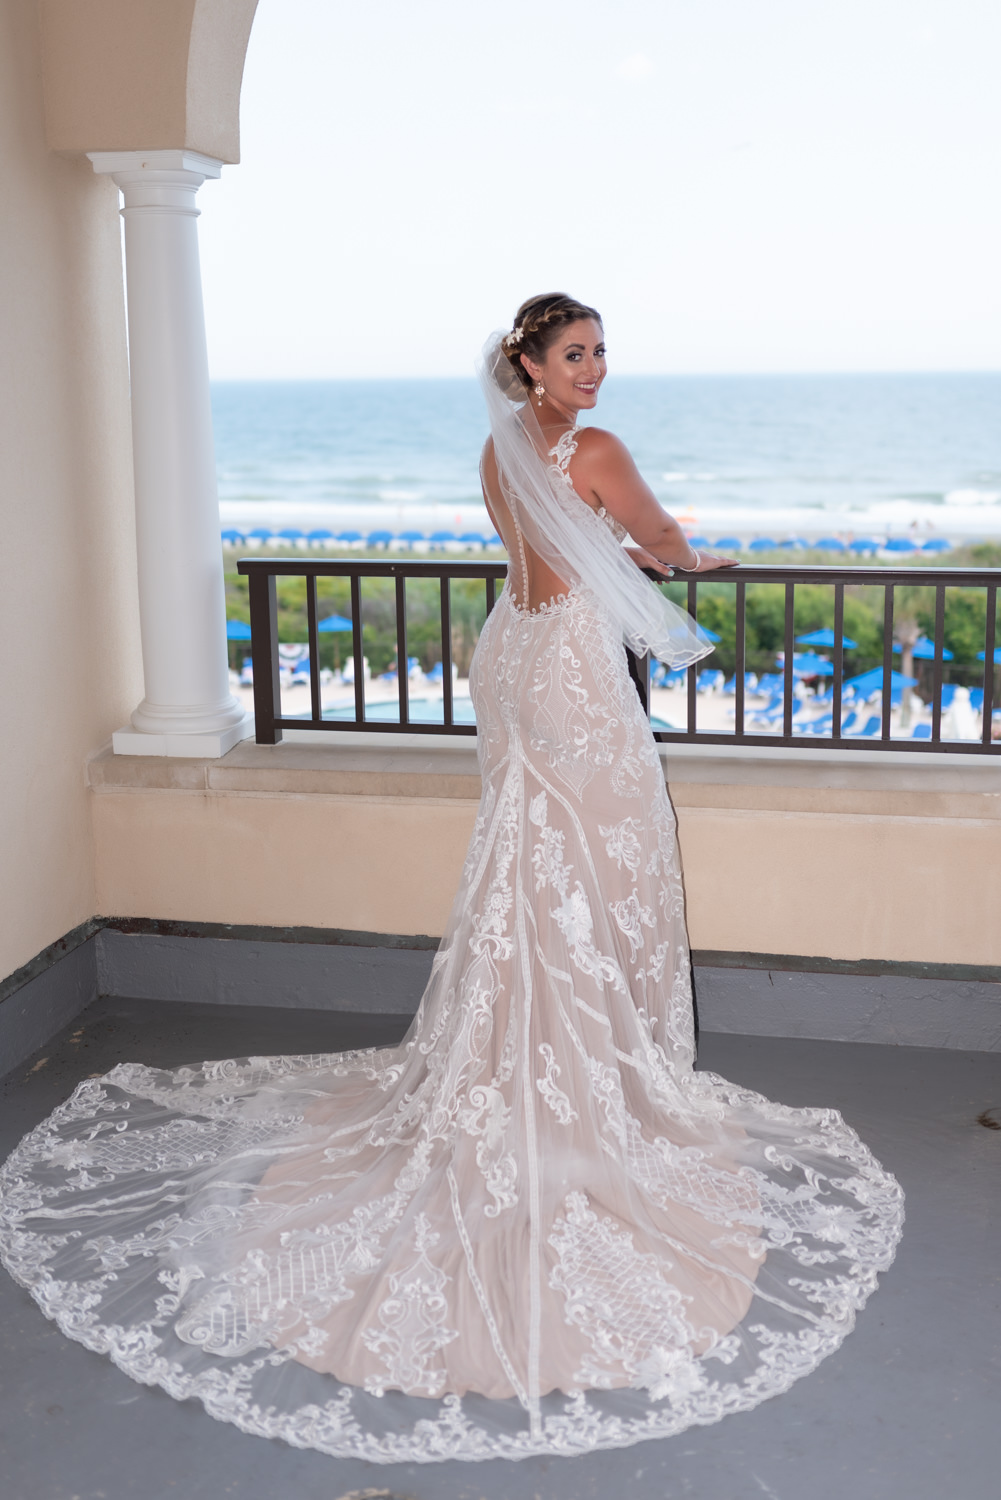 Bride standing on the balcony - Grande Dunes Ocean Club - Myrtle Beach